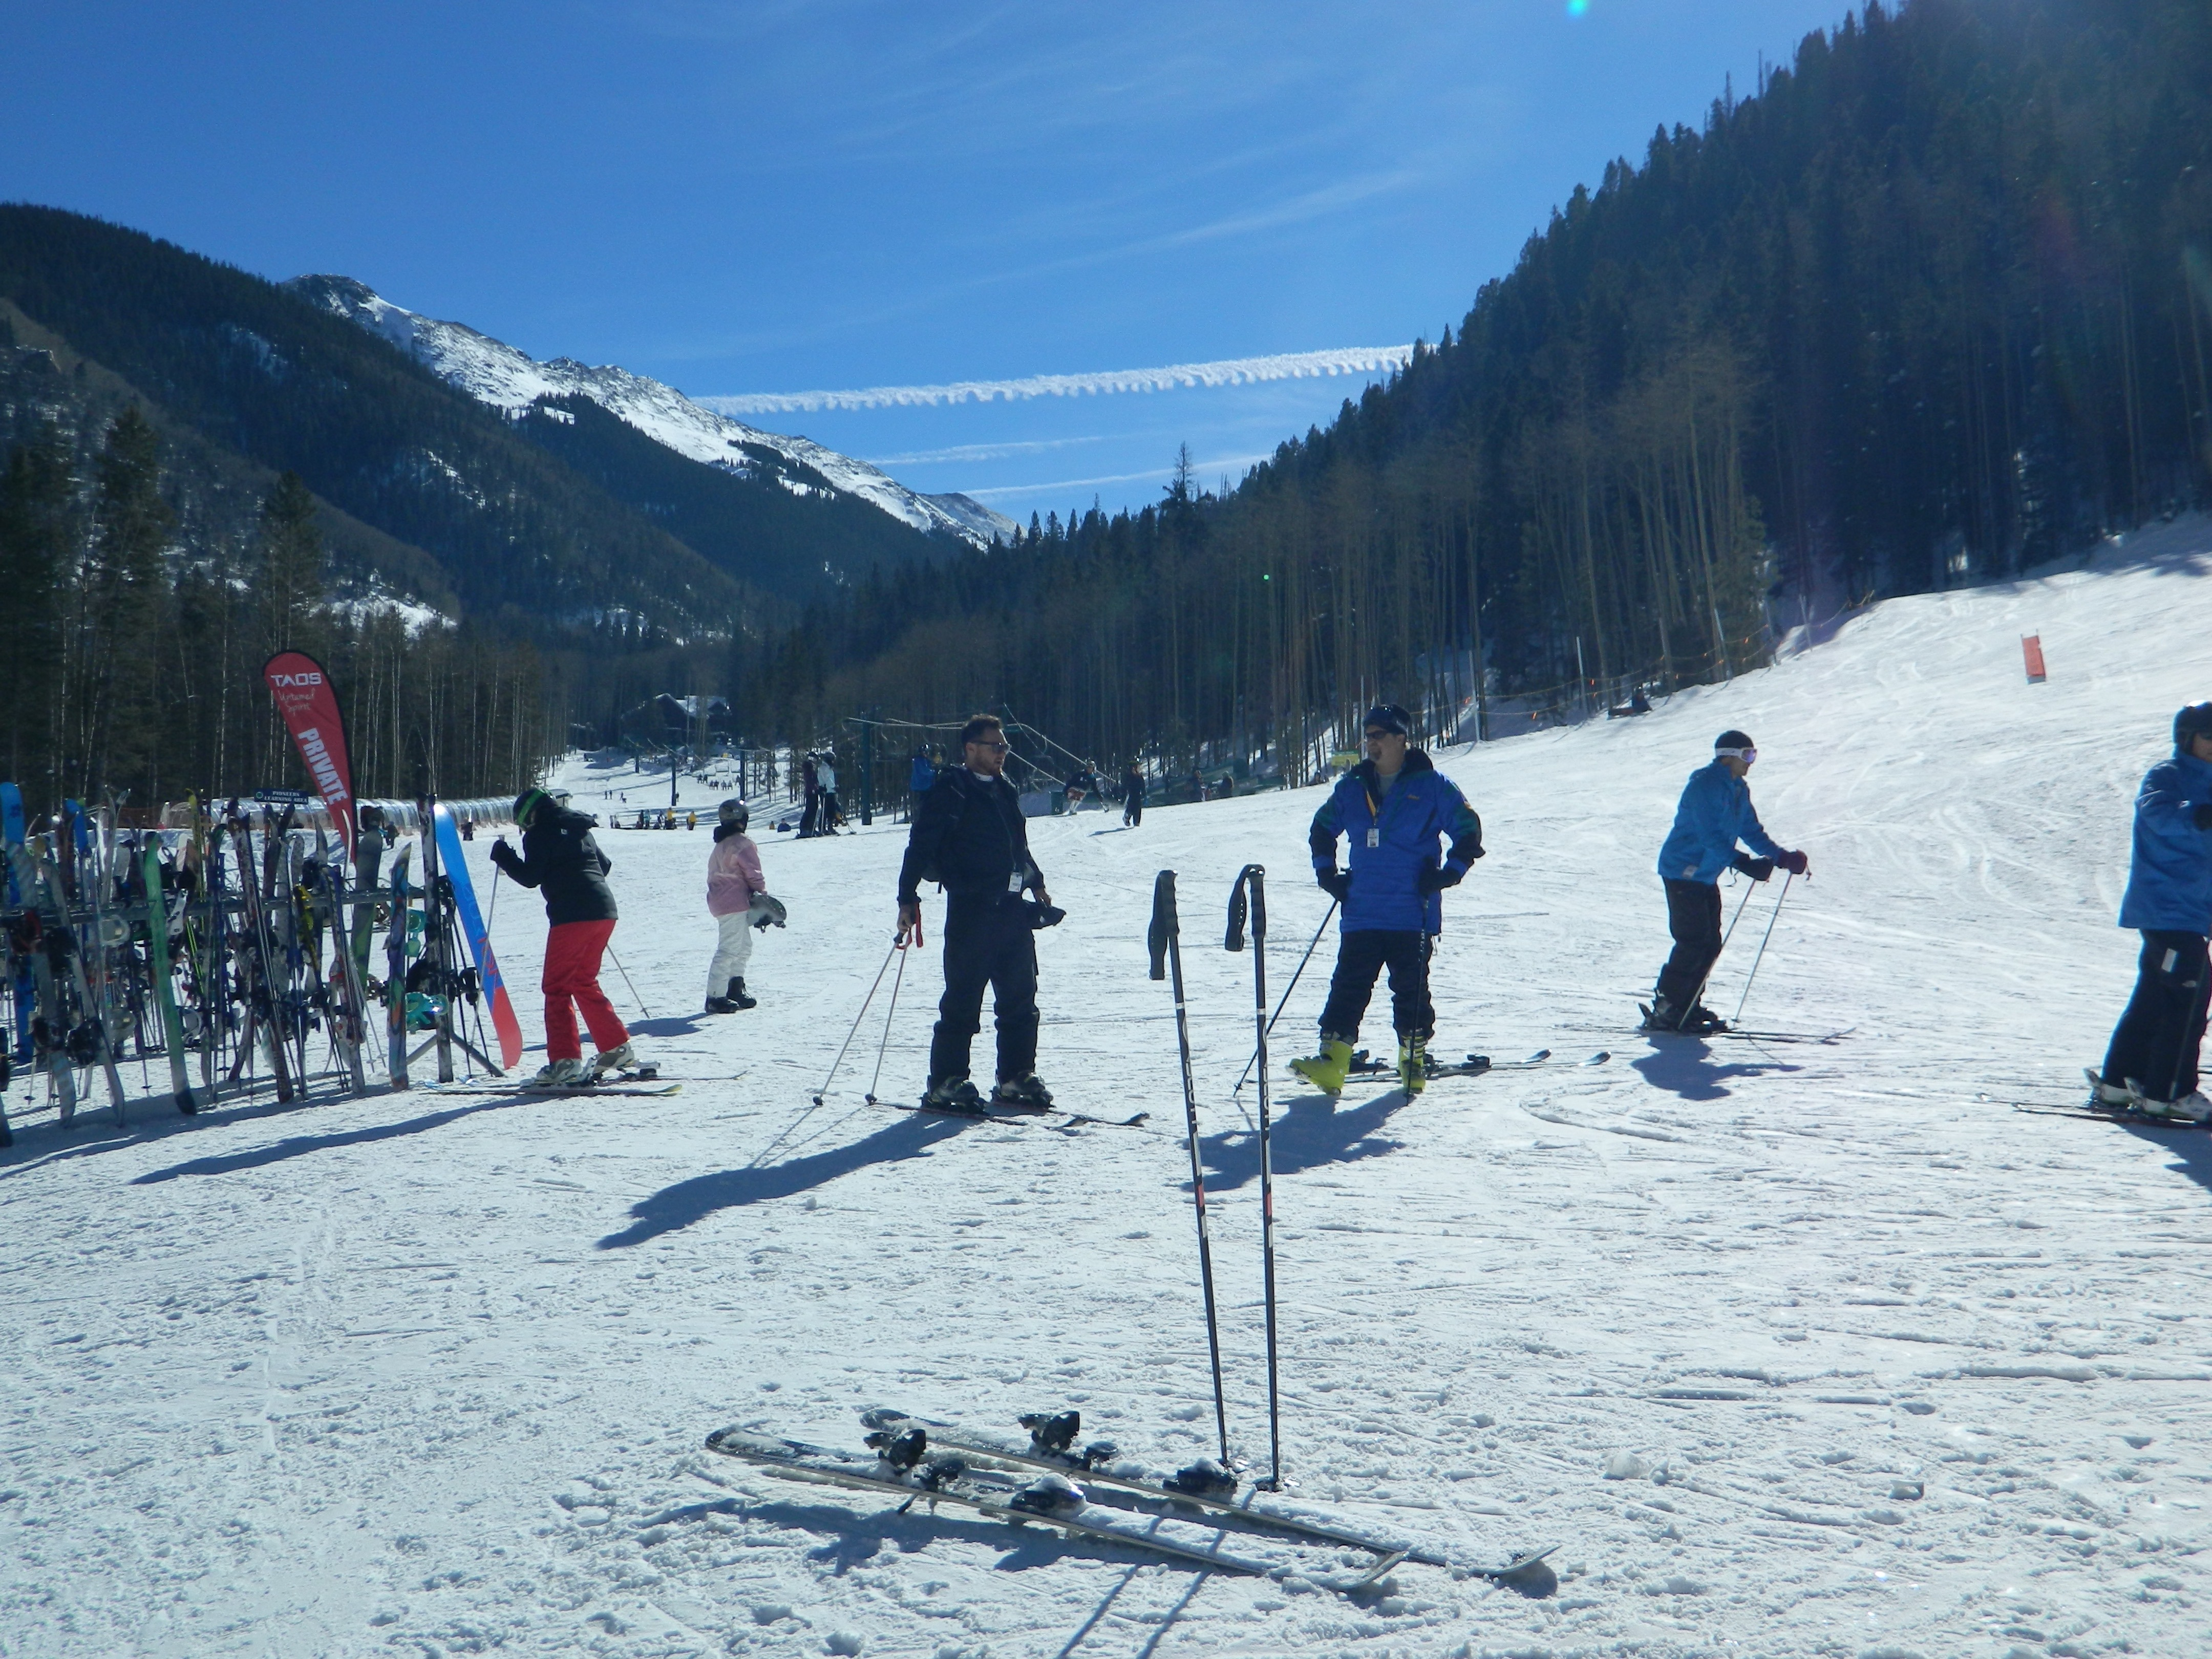 A pair of skis and poles by themselves at the base of Taos Ski Valley. Skiers, wintry forest, mountain peaks, blue skies.